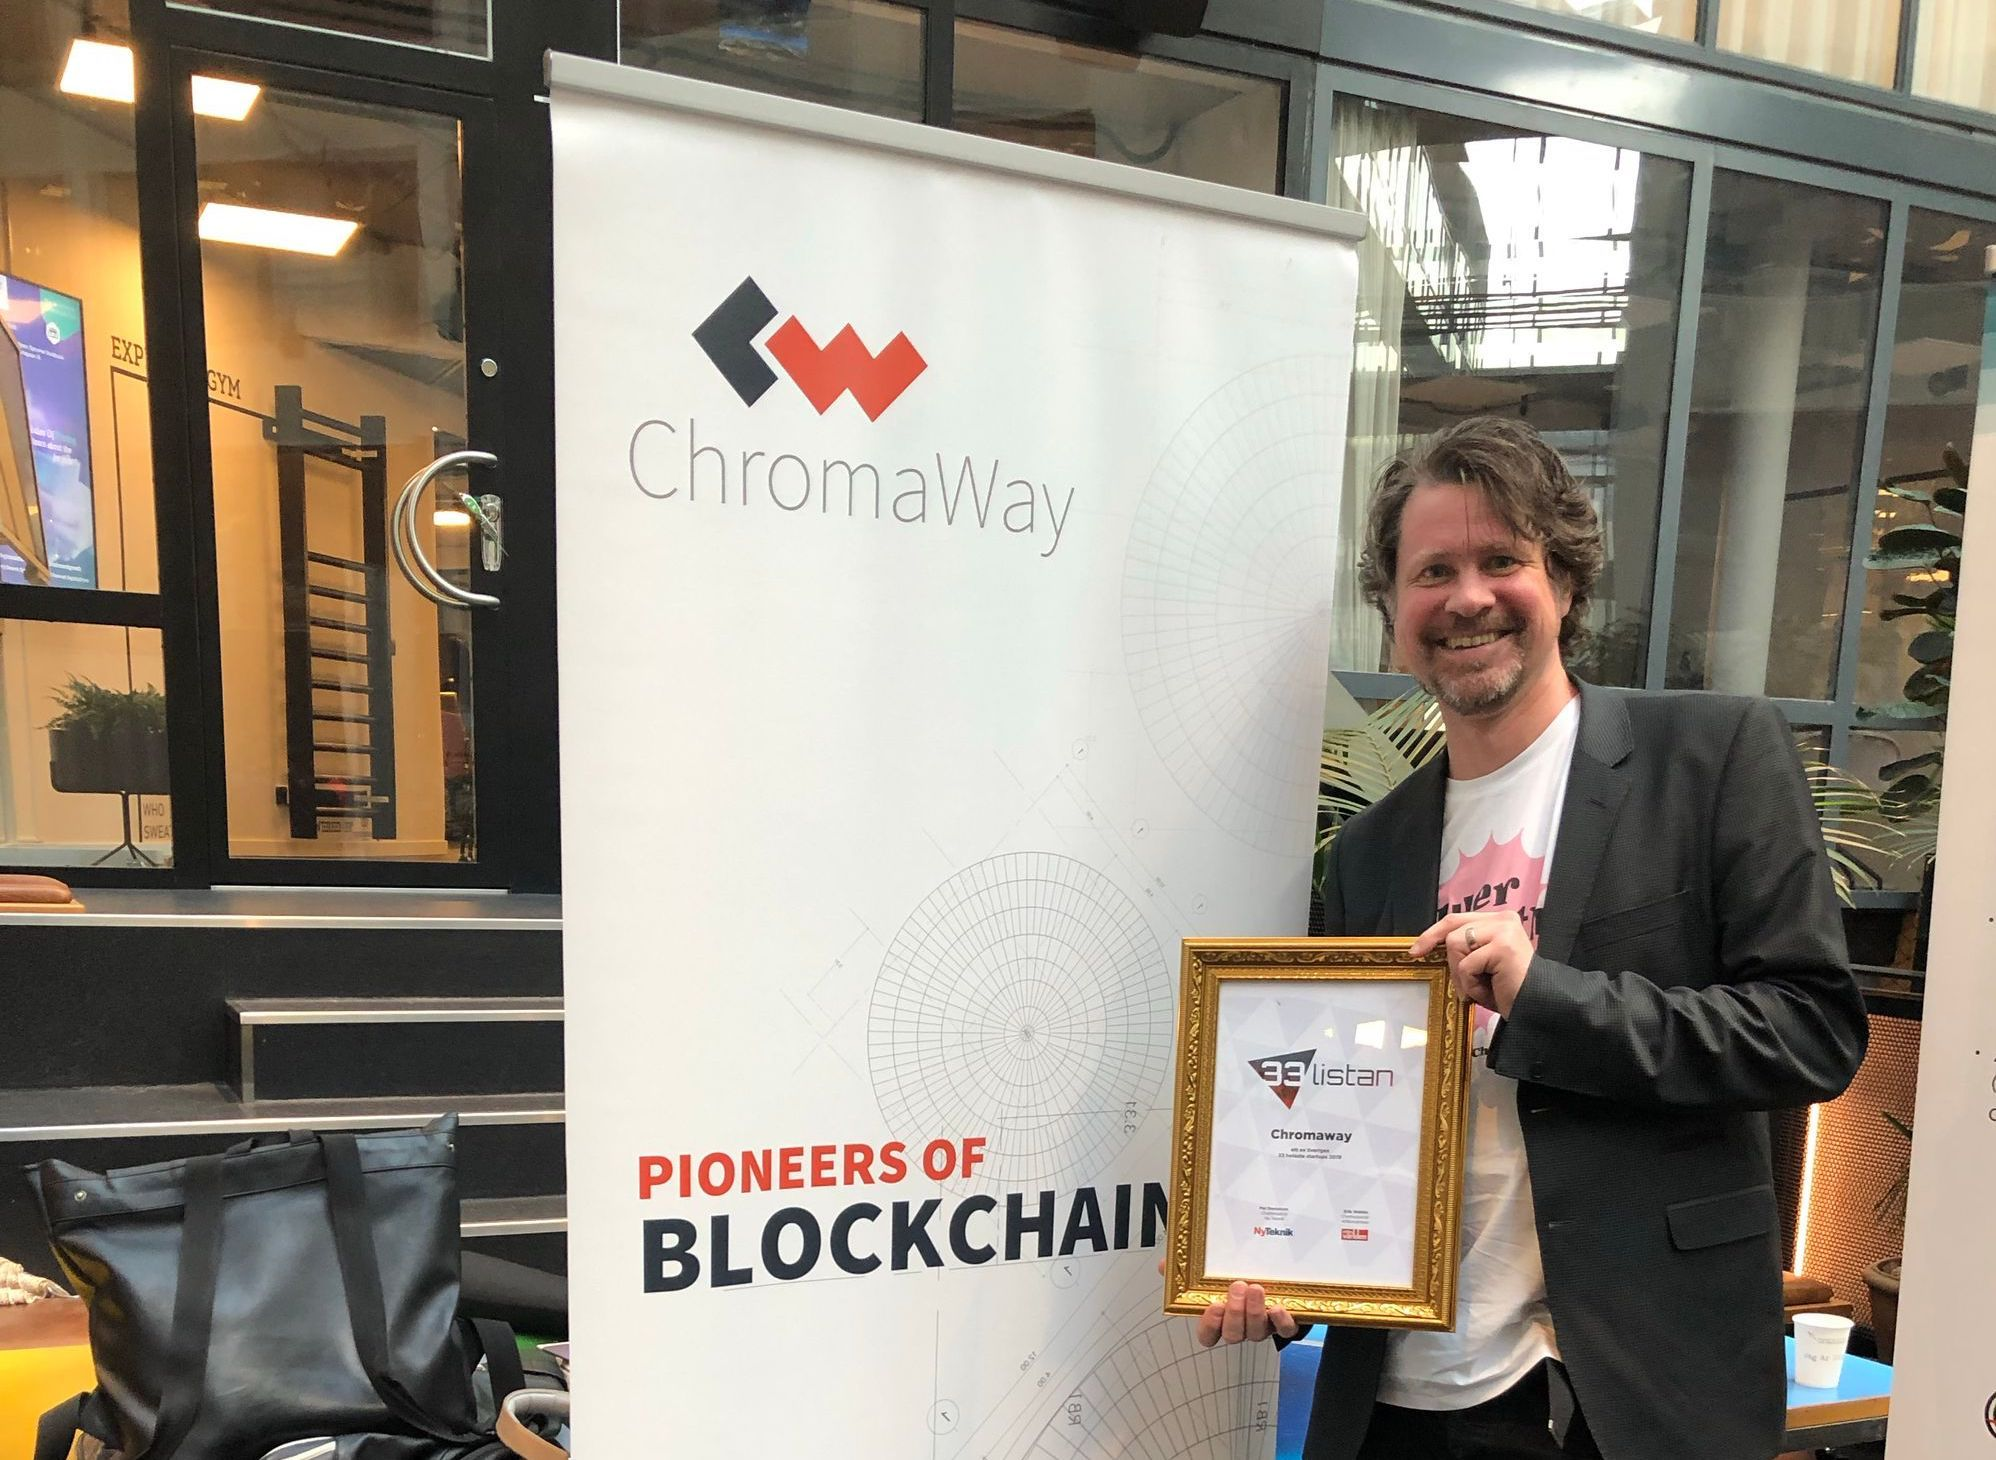 ChromaWay is, for the second time, recognized as one of the best startups in Sweden